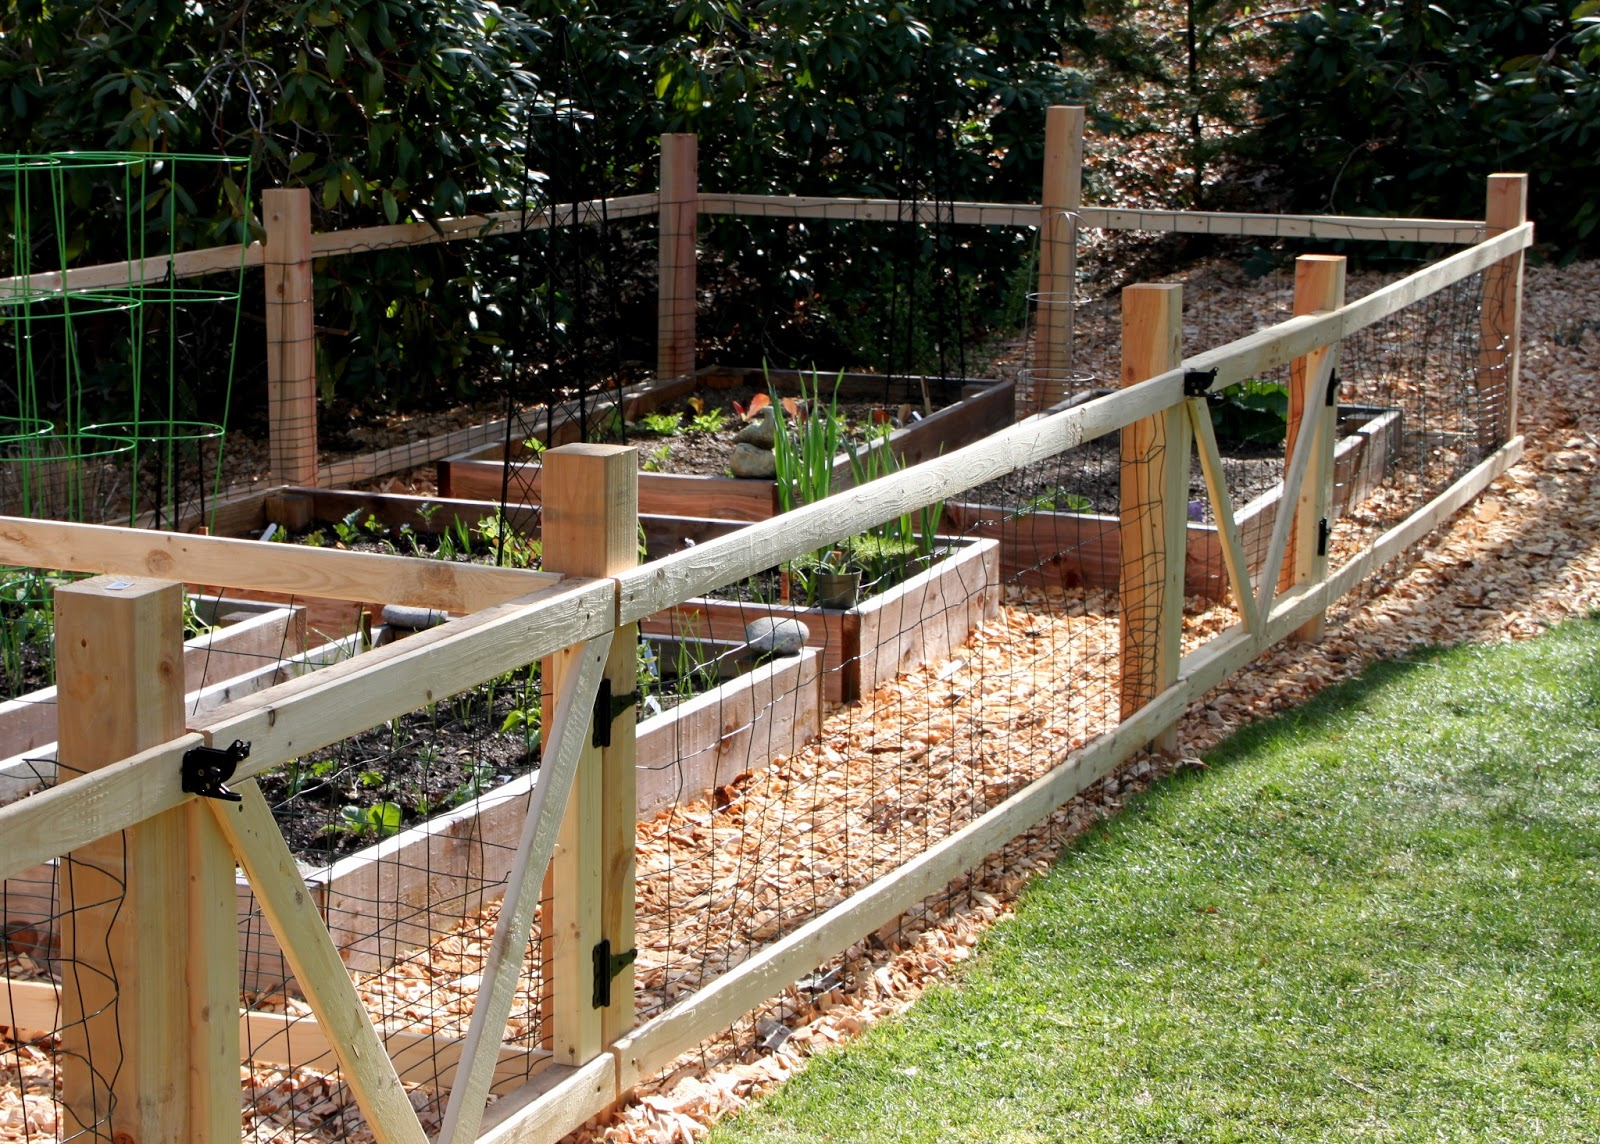 Tilly 39 s nest a simple garden fence Building a fence